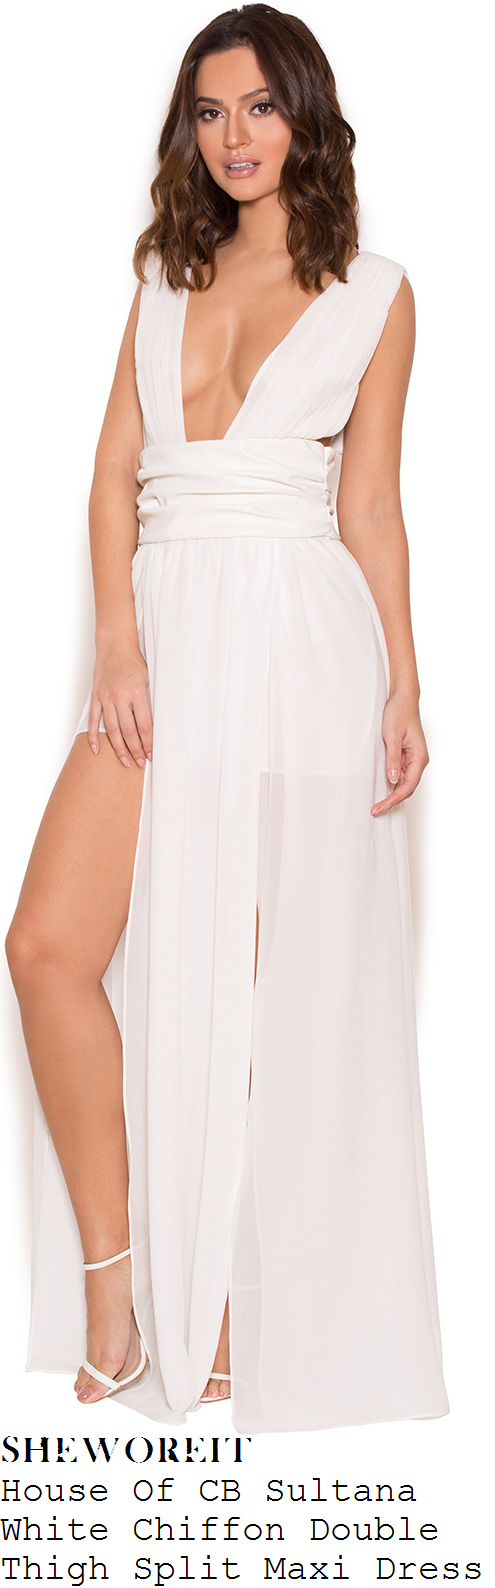 vicky-pattison-house-of-cb-sultana-white-chiffon-sleeveless-plunge-front-thigh-split-maxi-dress